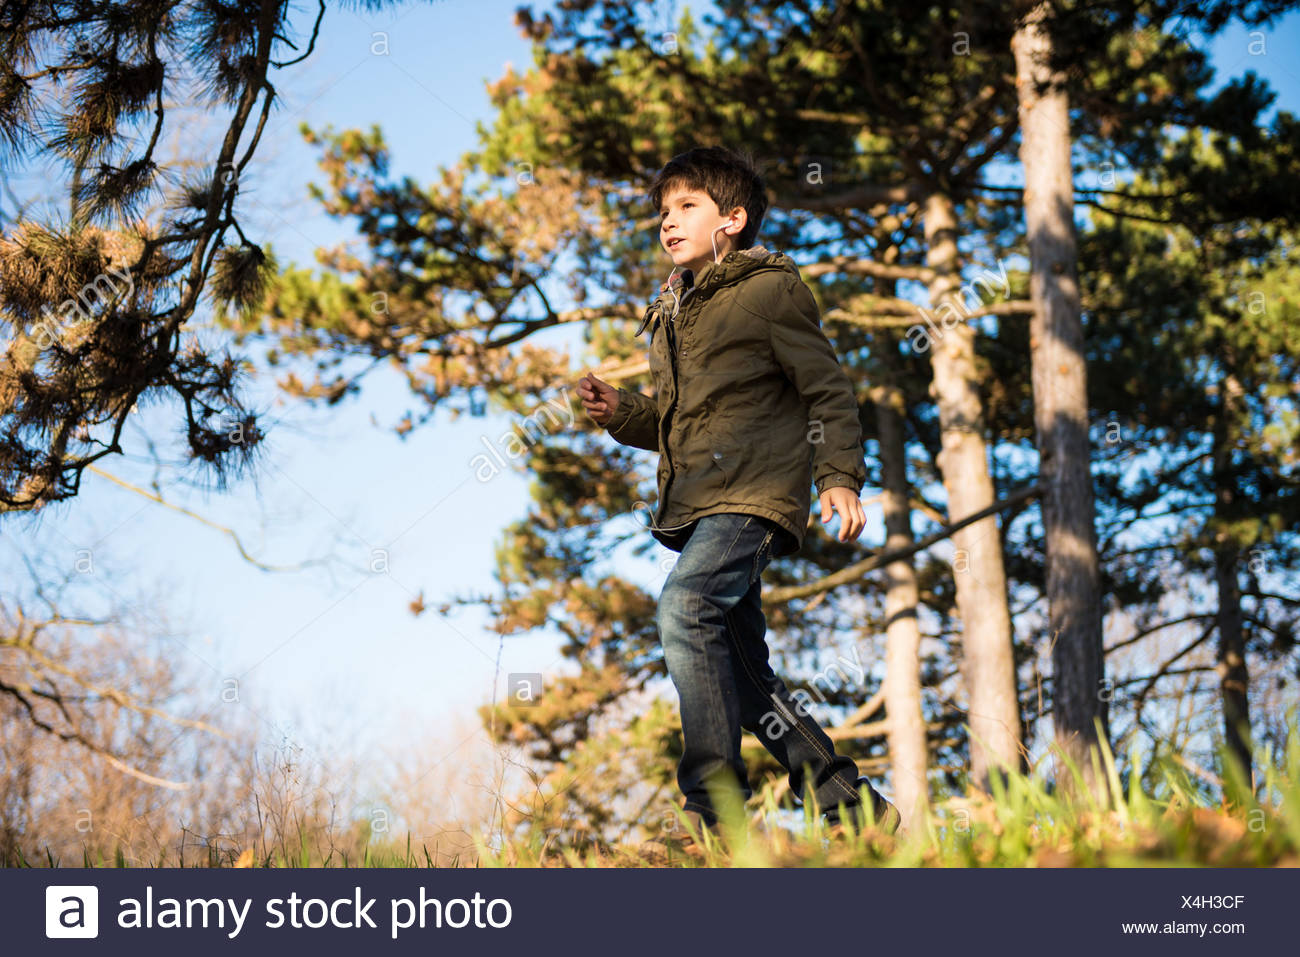 Boy walking in countryside - Stock Image